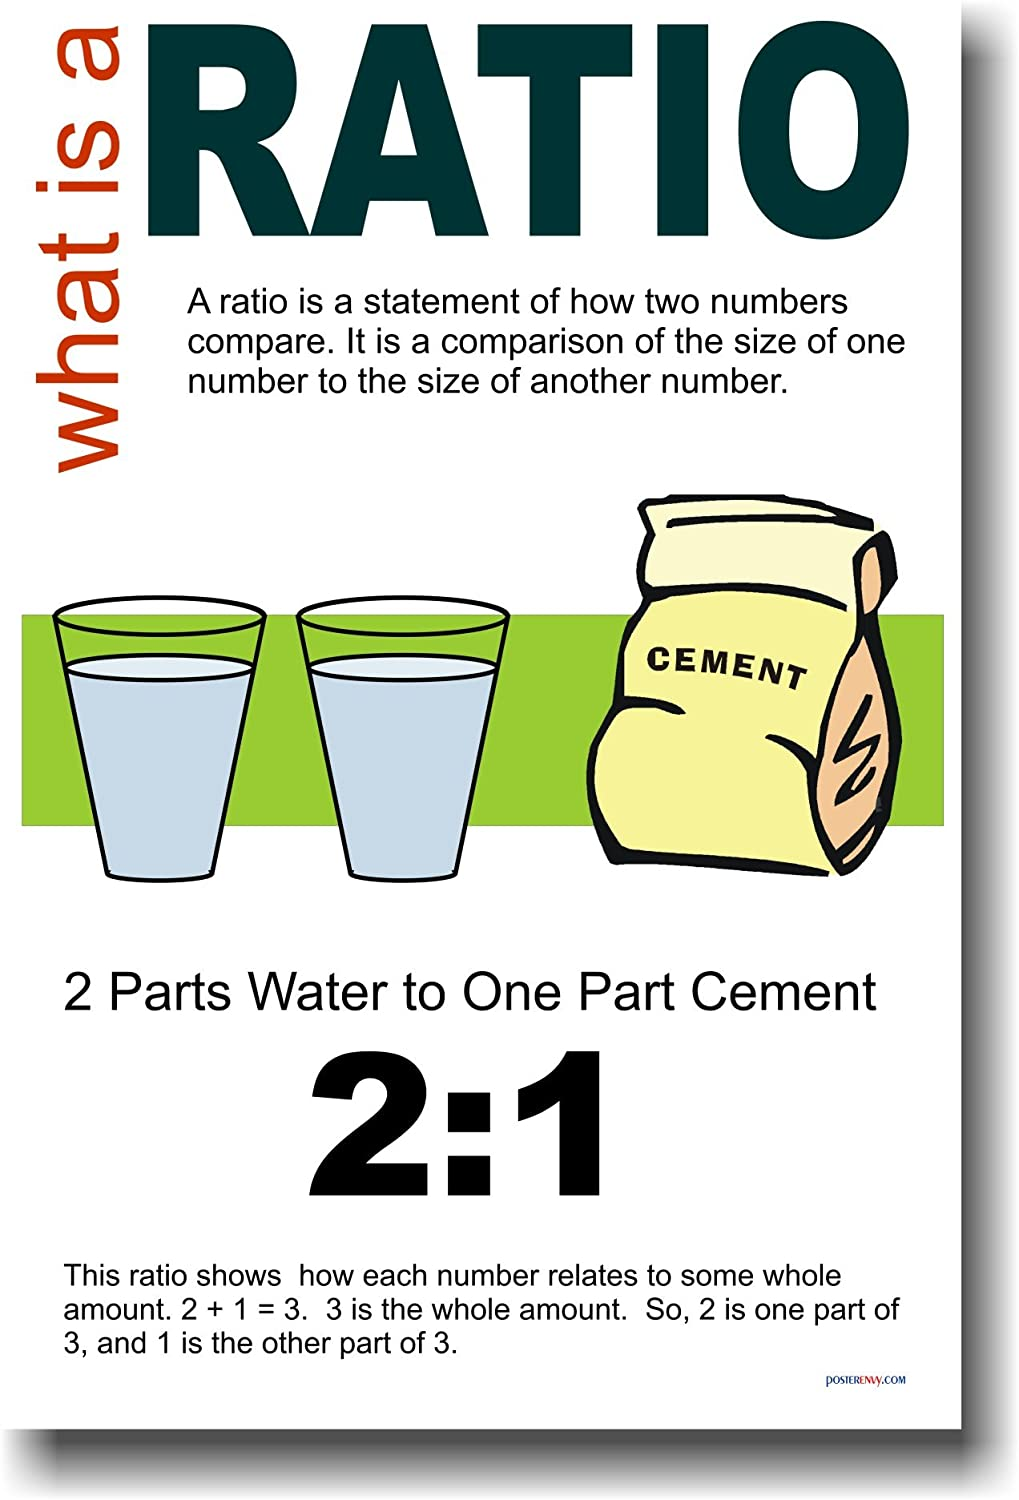 Amazon.com: What Is a Ratio? - Educational Classroom Math Poster: Prints:  Posters & Prints